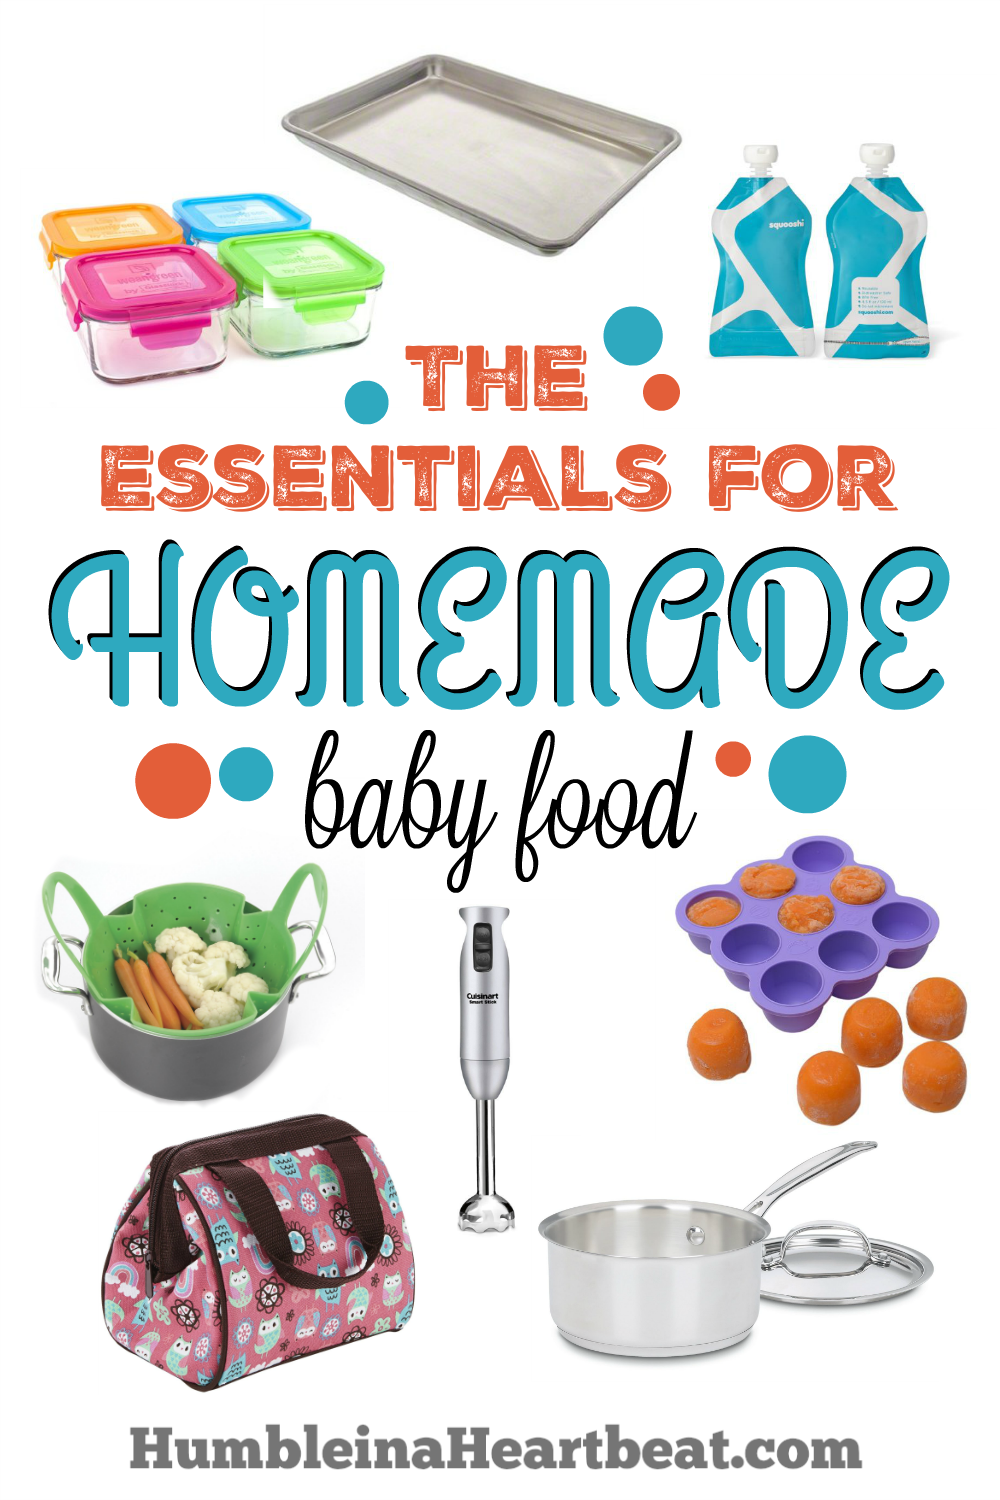 Ready to start making baby food for your little one? Don't get roped into buying too many gadgets that you won't actually use for very long. These are the essentials and you probably have many of them at home.